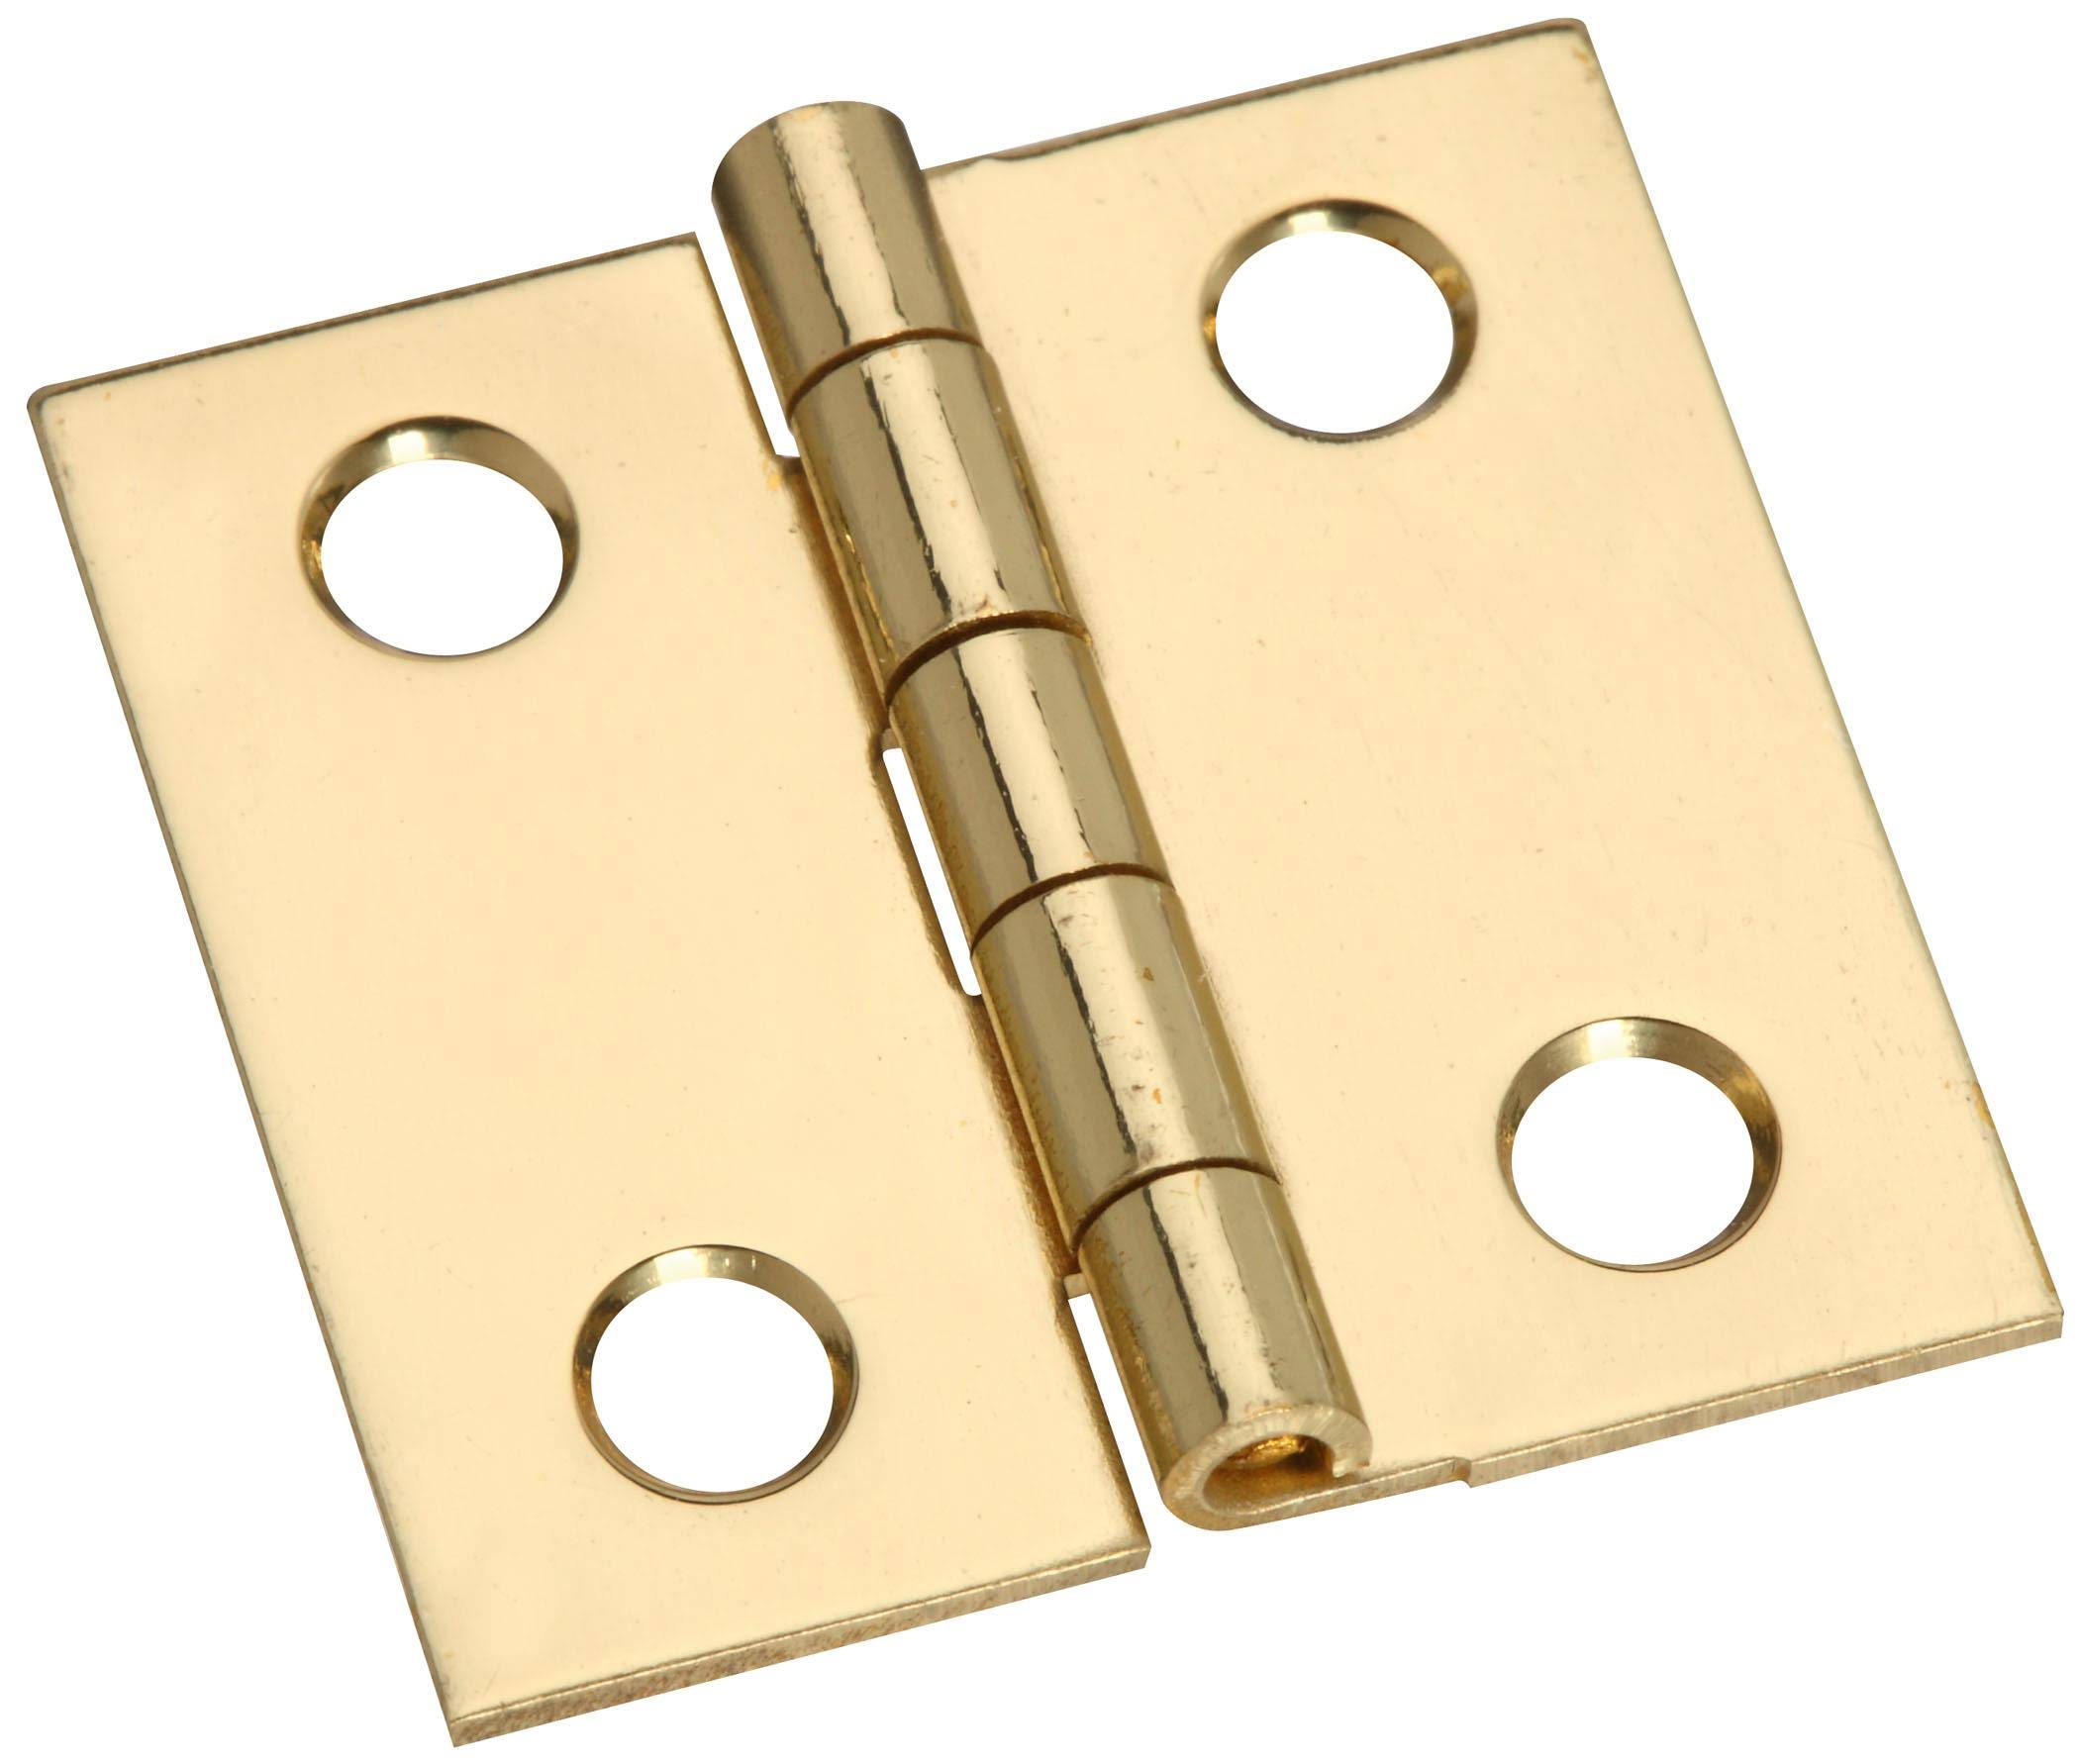 National Hardware Broad Hinge - Brass, 1x1""